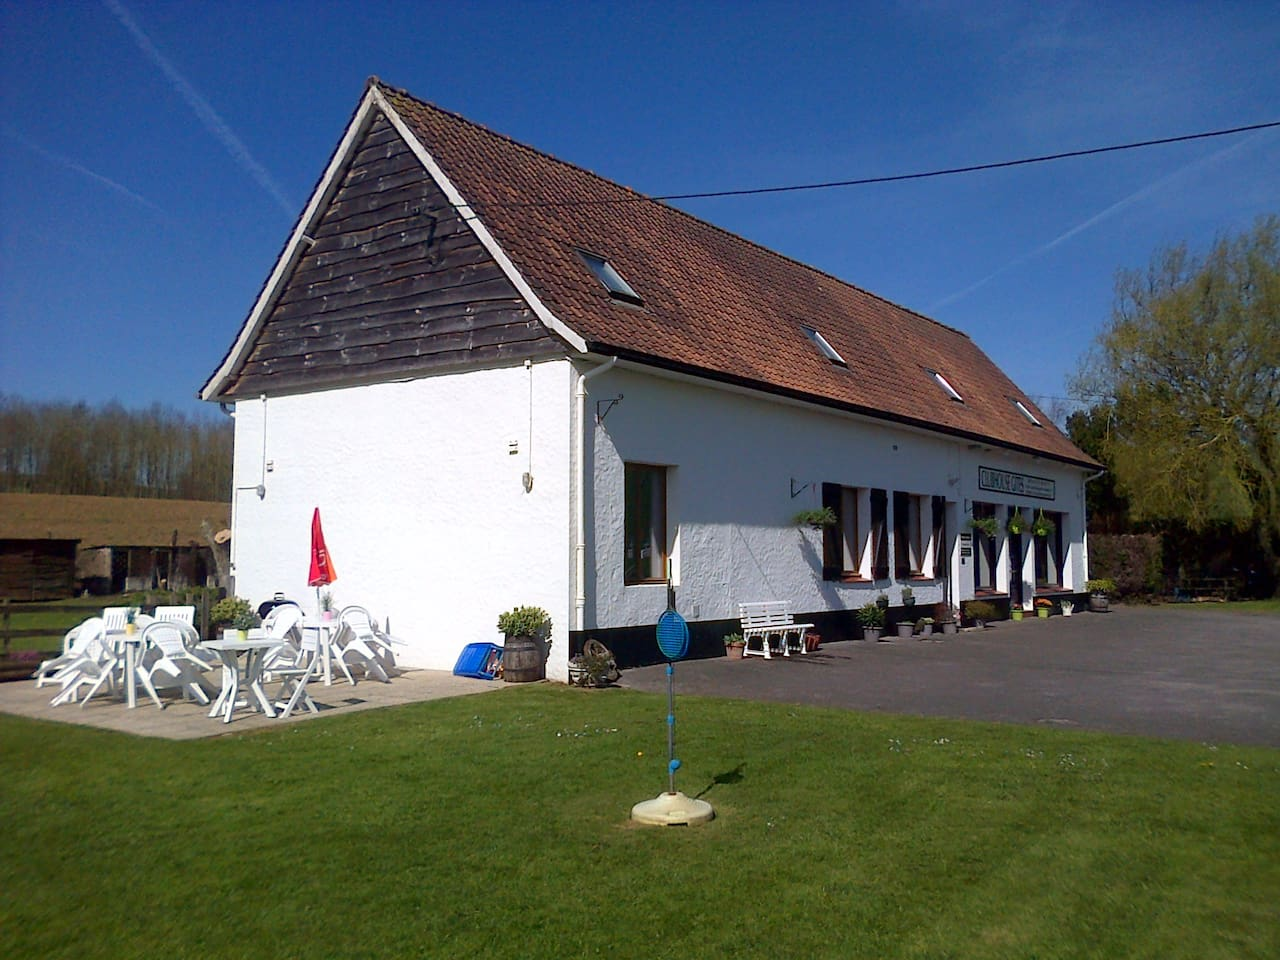 Clubhouse Gites - close to Montreuil-Sur-Mer, Le Touquet and Hardelot